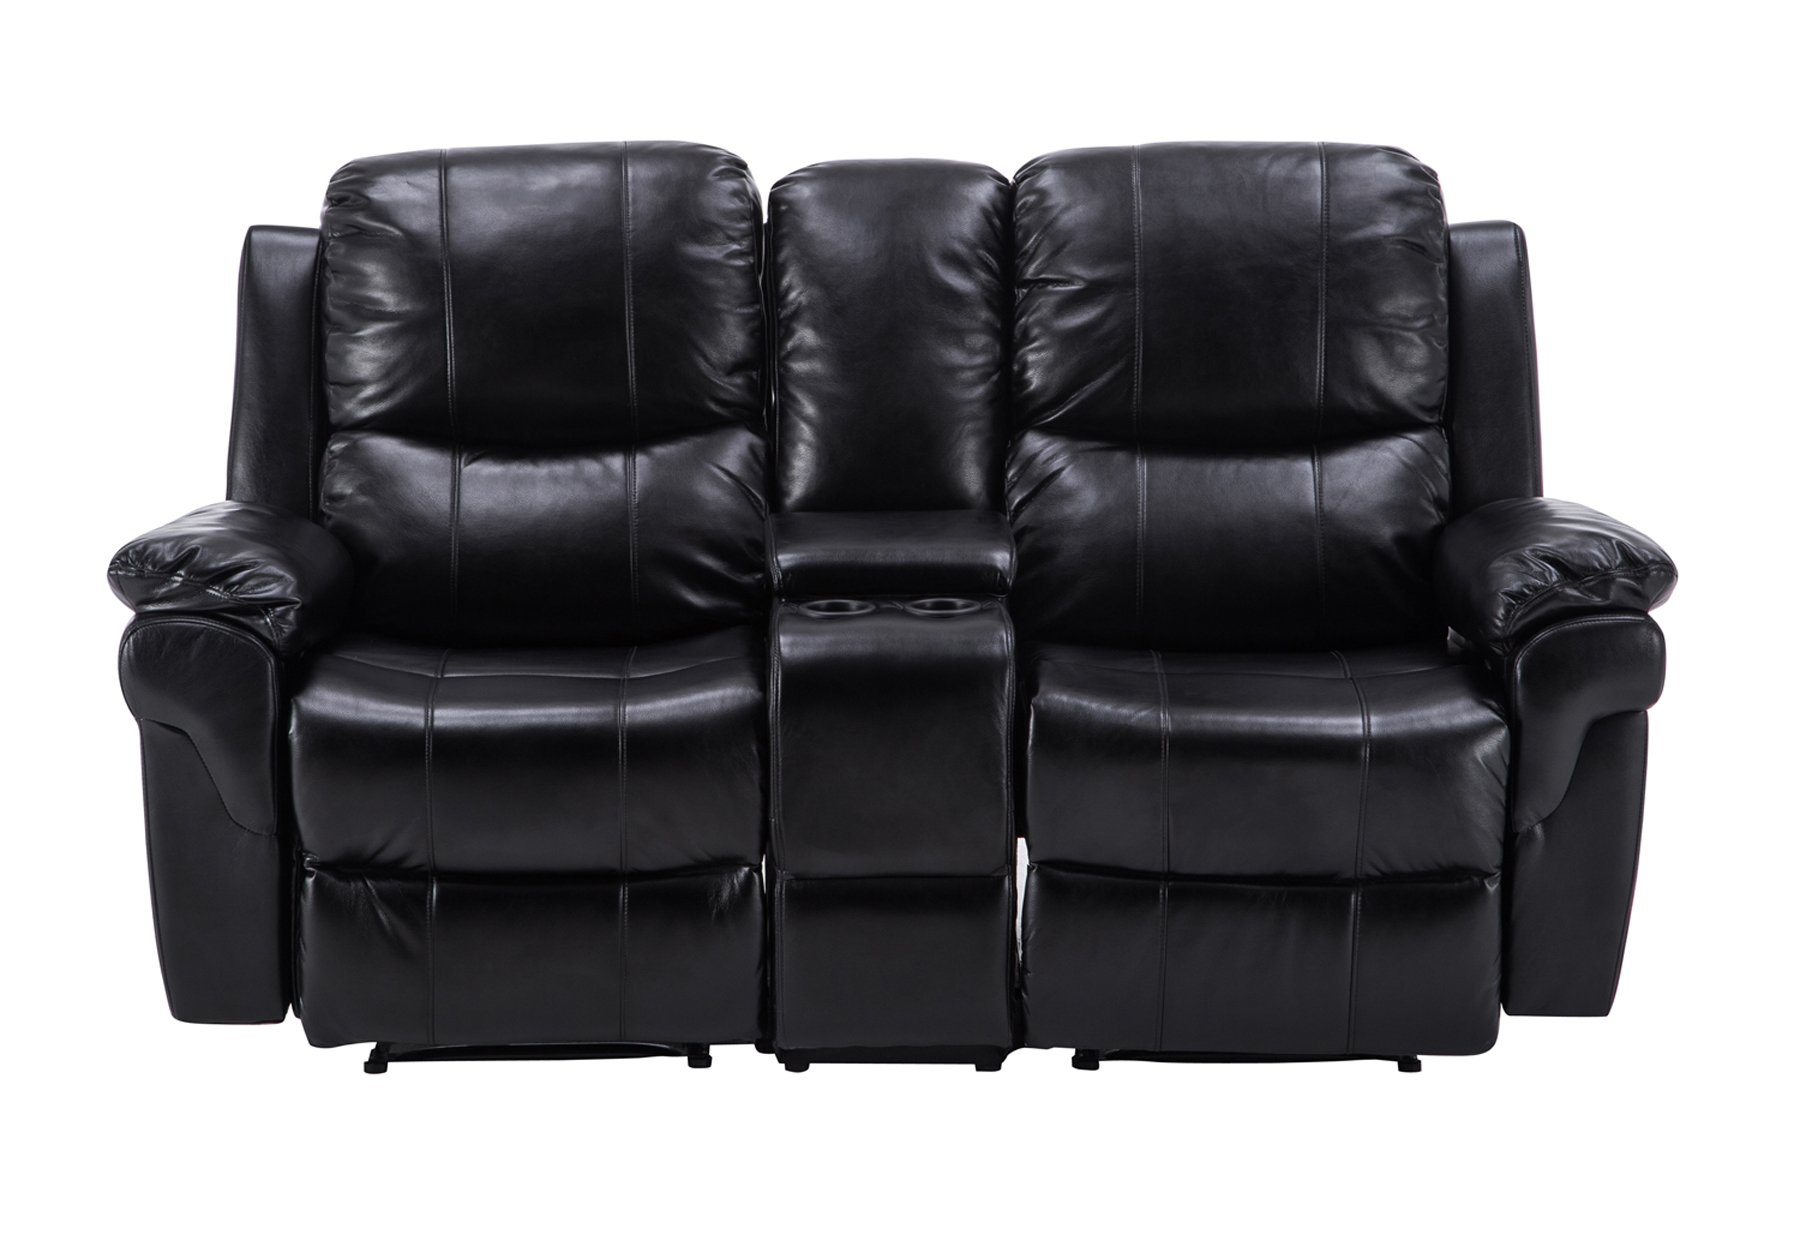 Kinosessel Sofa Mcombo Kinosessel Fernsehsessel Relaxsessel 2 Sitzer